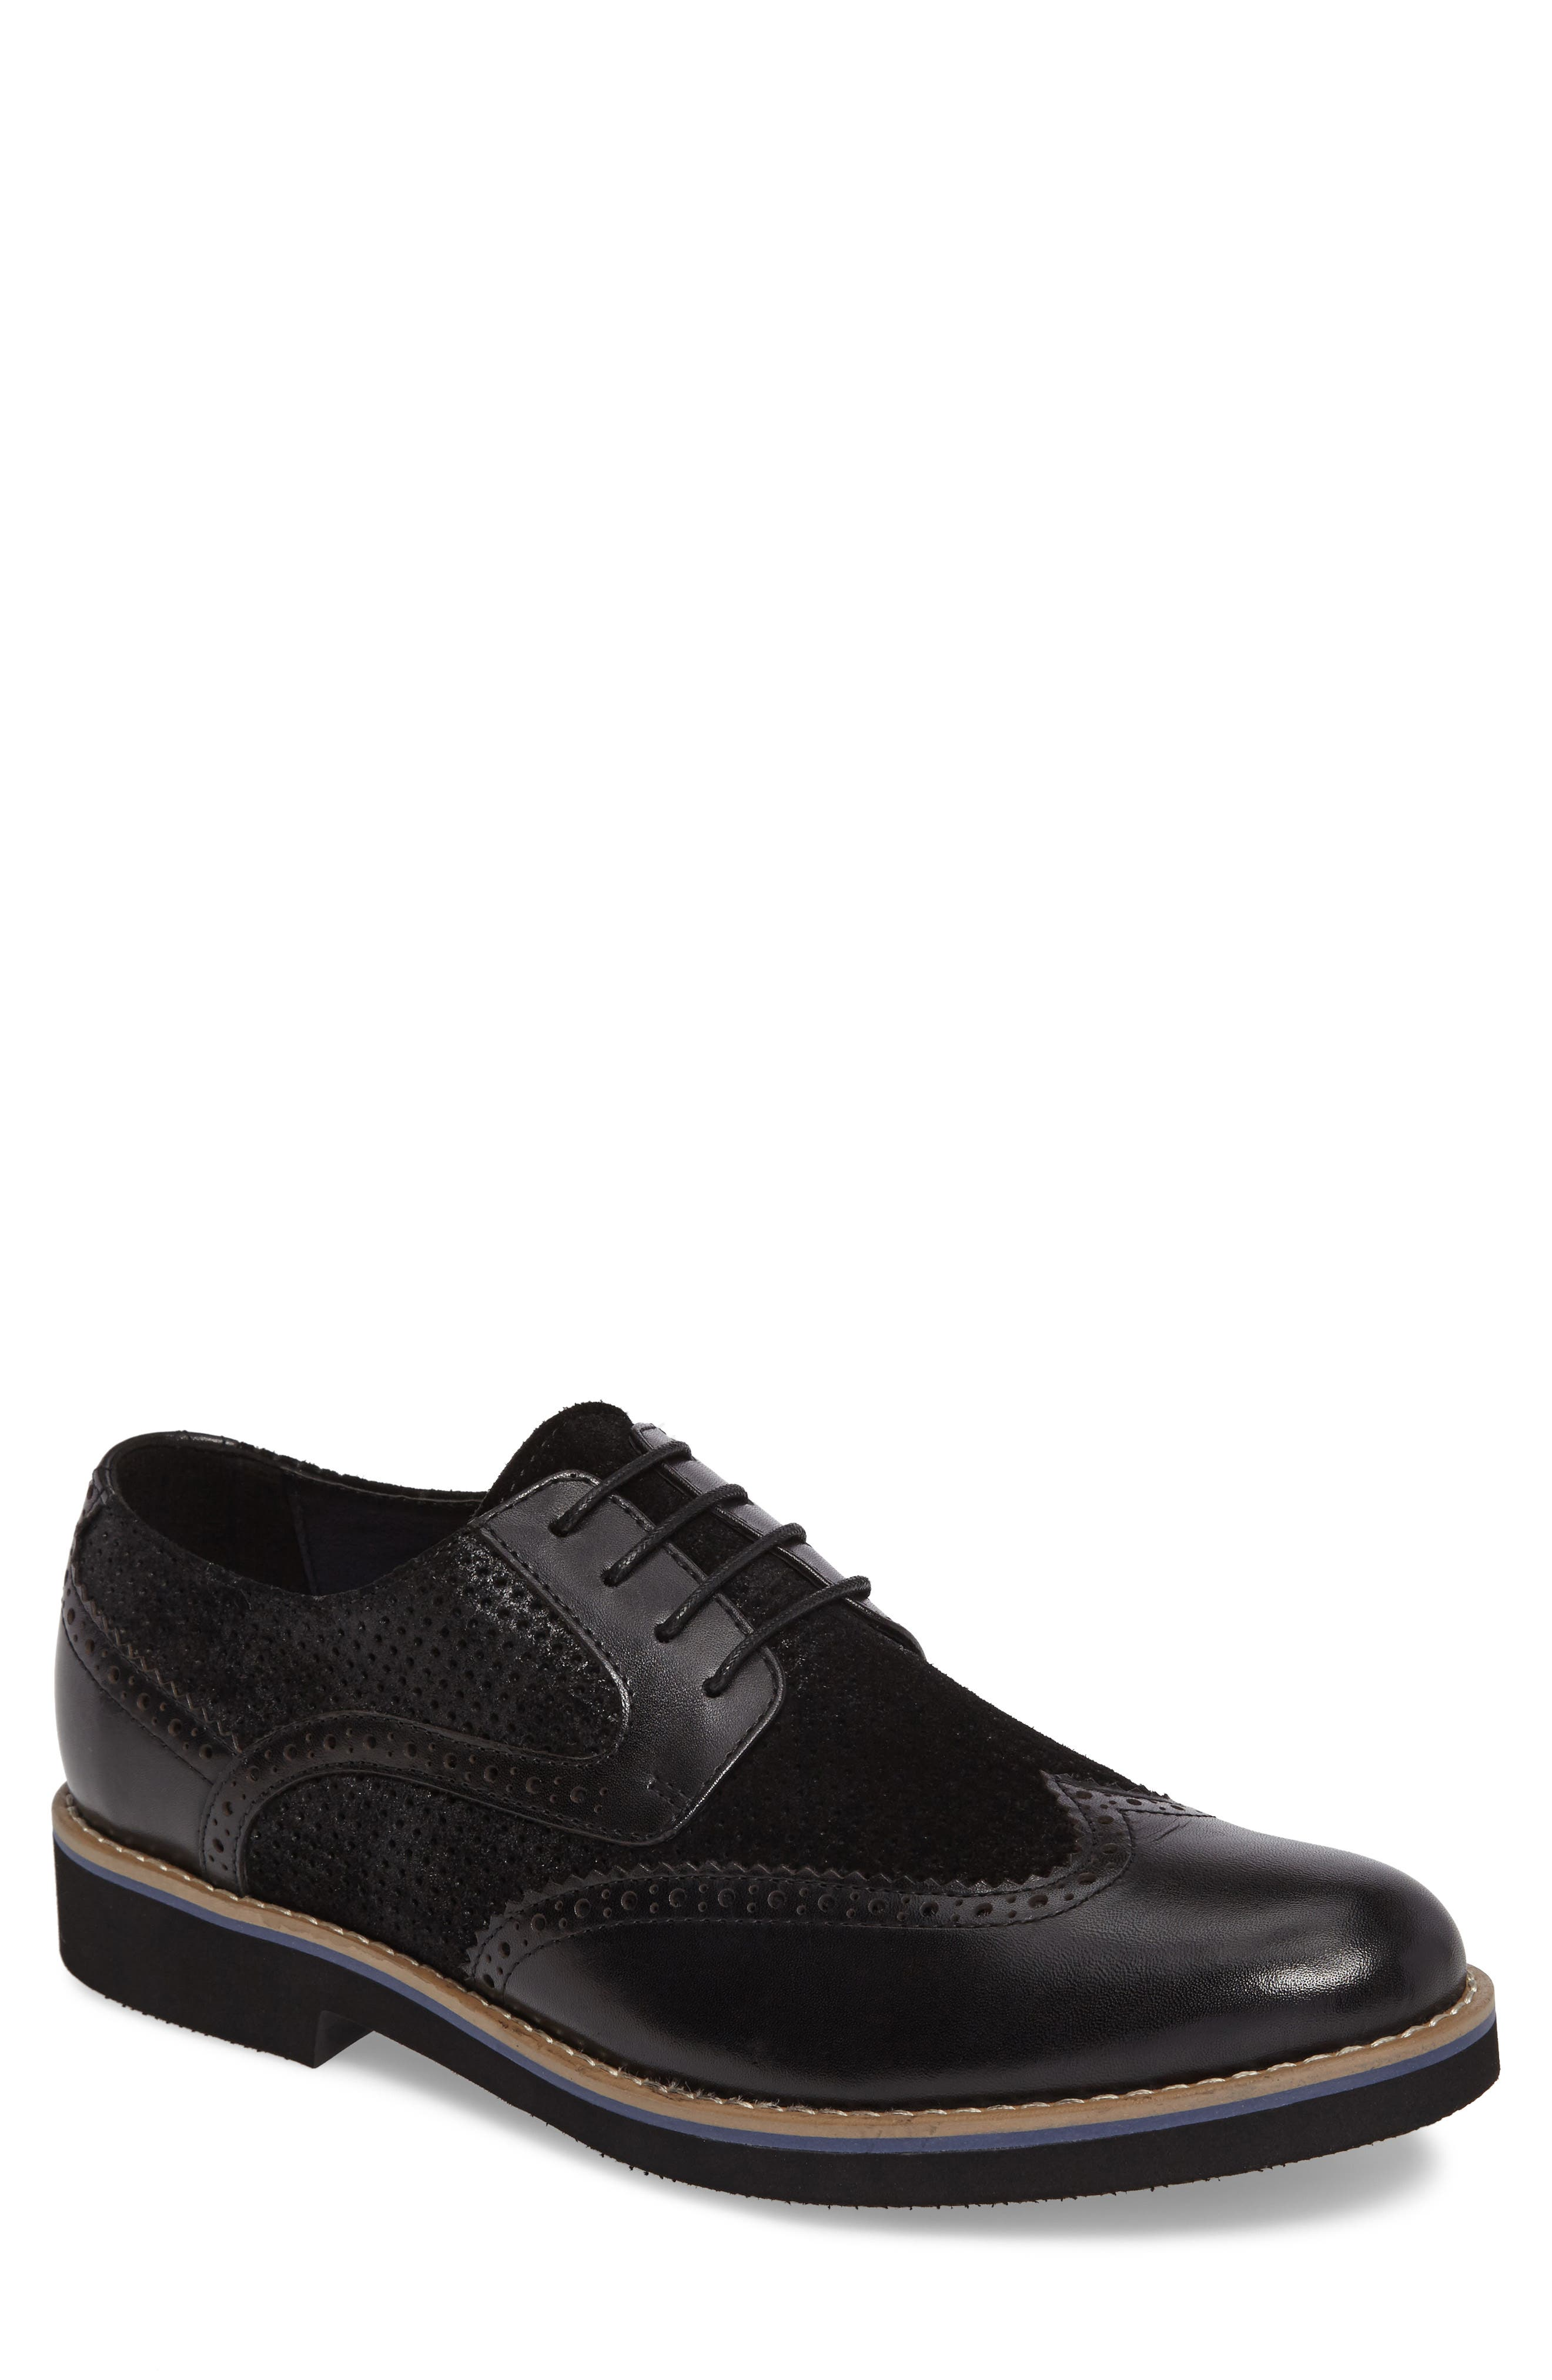 English Laundry Maritime Spectator Shoe (Men)